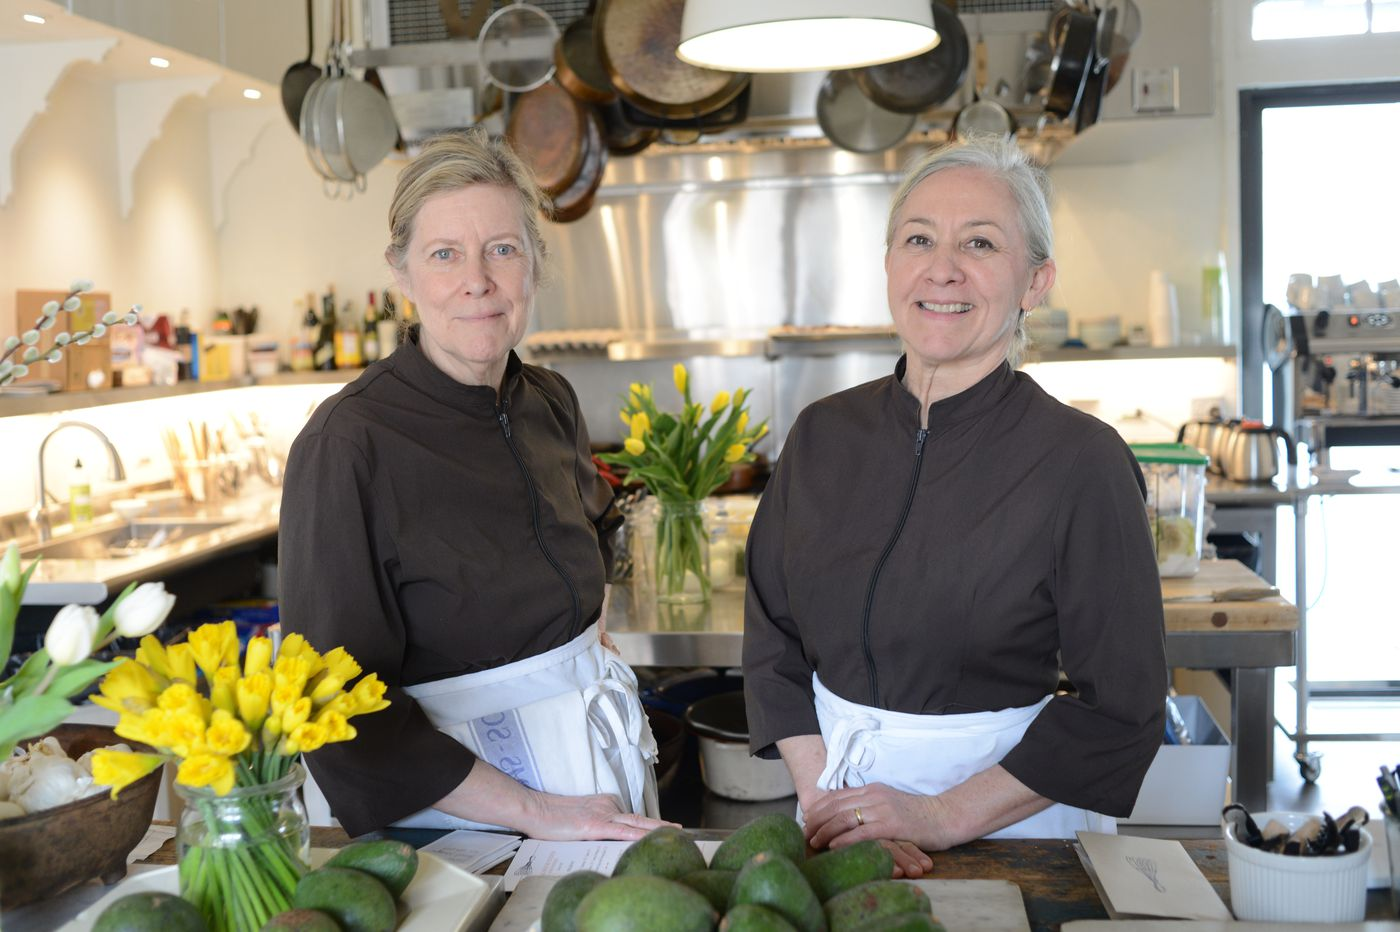 Canal House Station brings author-chef duo's cookbooks and recipes to life